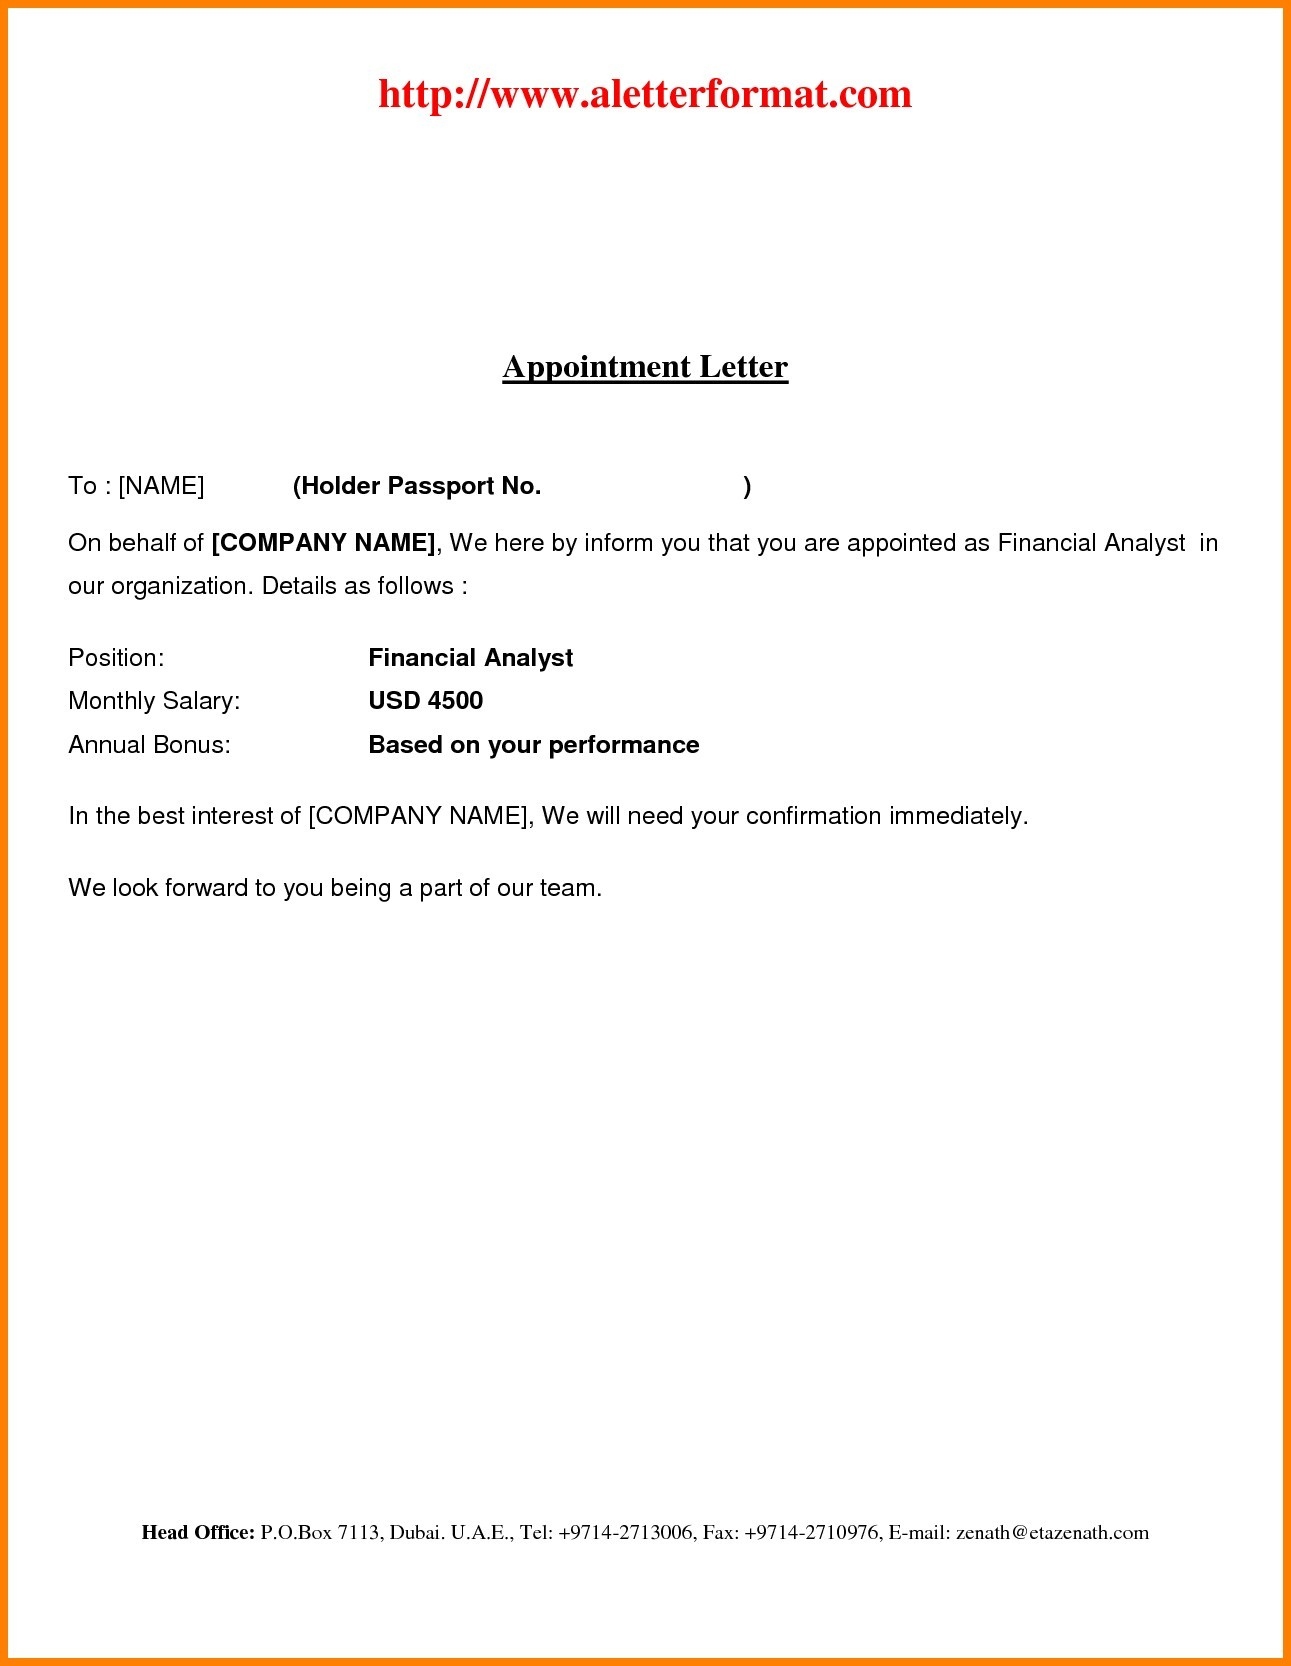 conditional offer of employment letter template examples letter